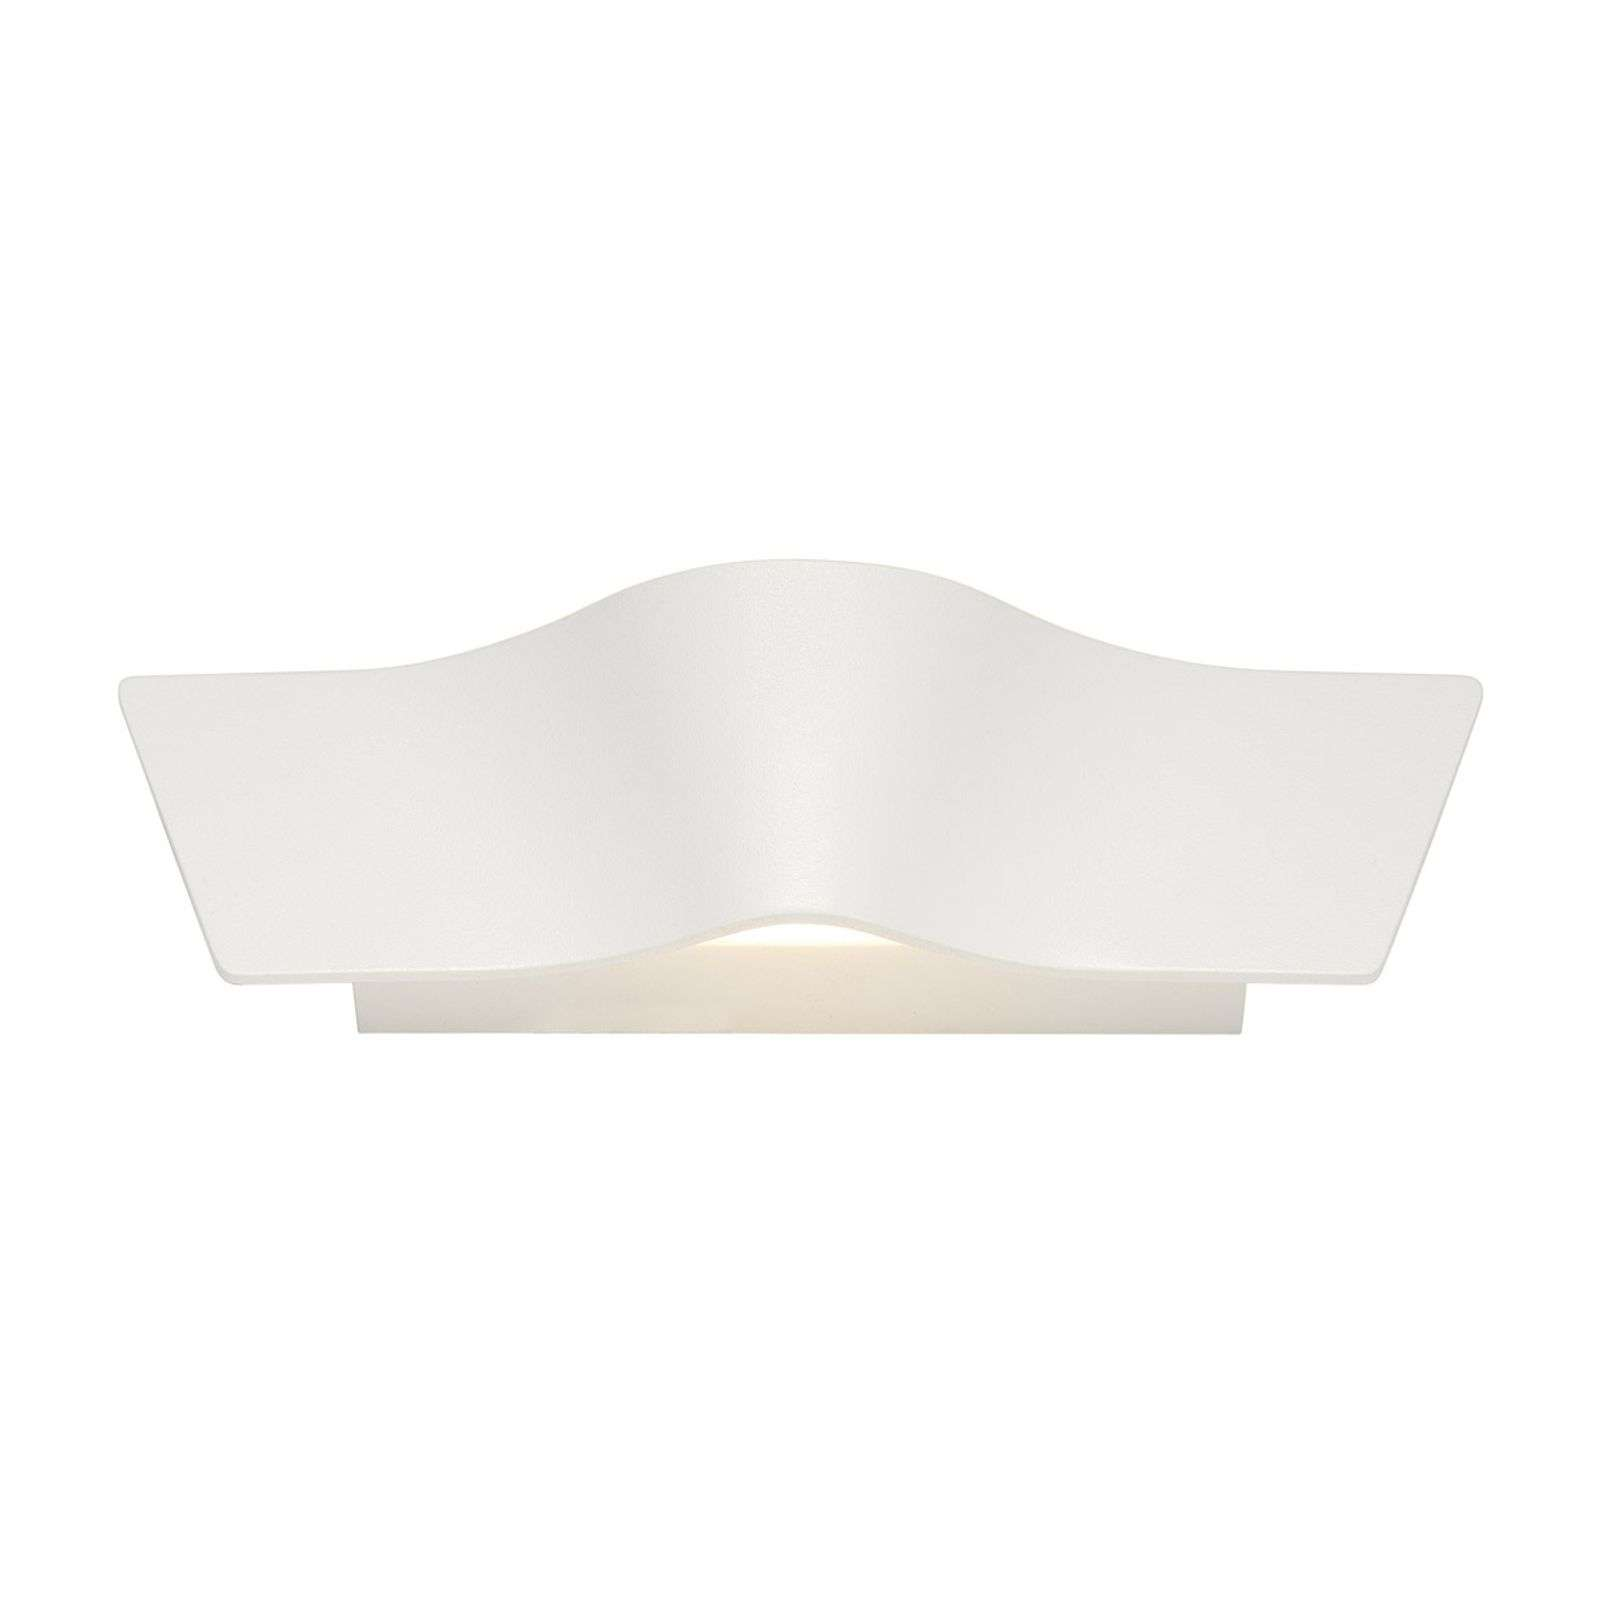 Applique LED blanche Wave, intensité variable